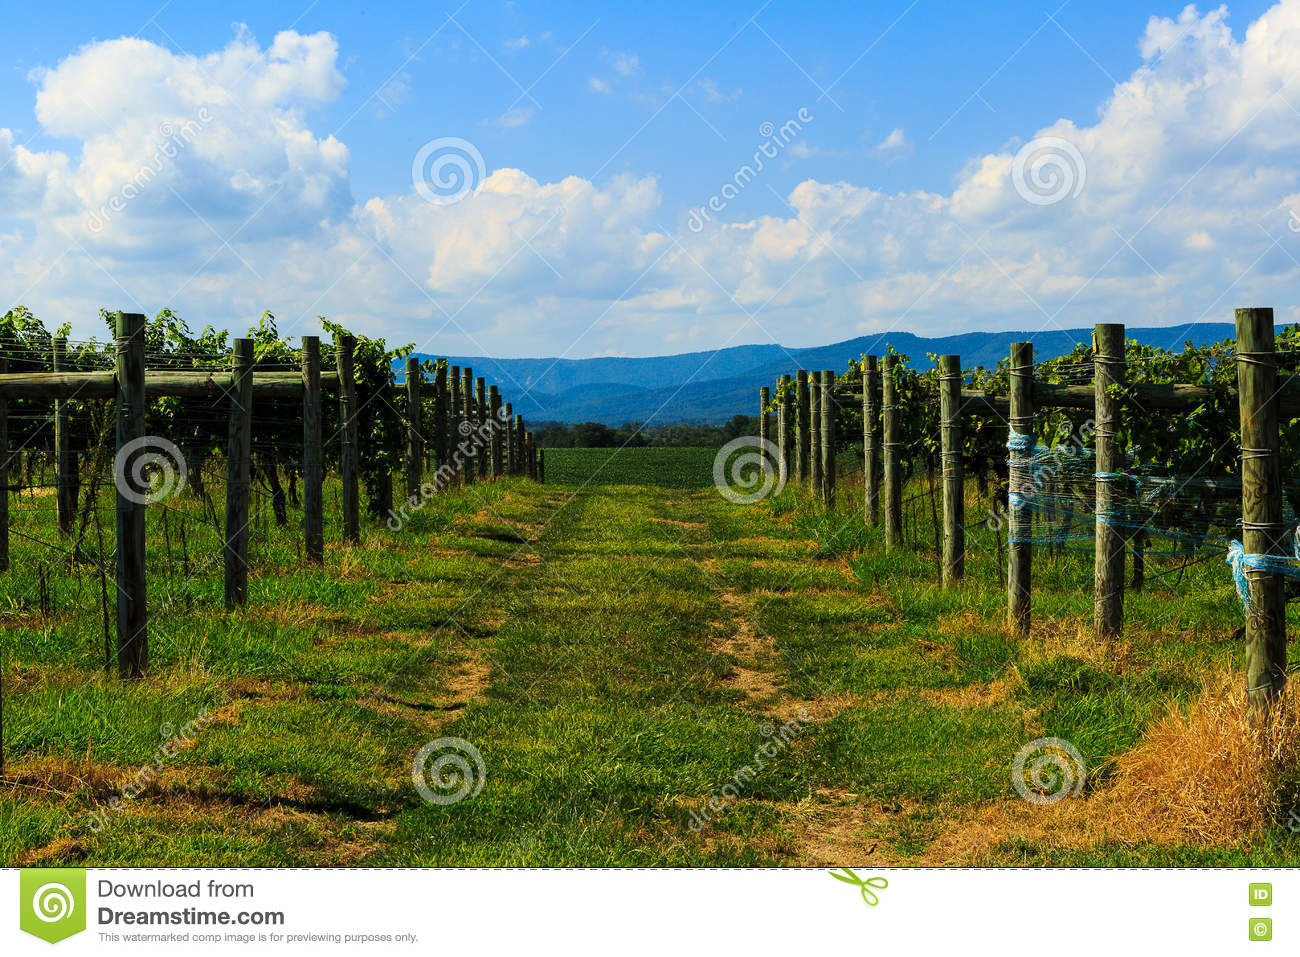 Vineyard In Virginia With Grapes And Mountain Scene Stock Photo